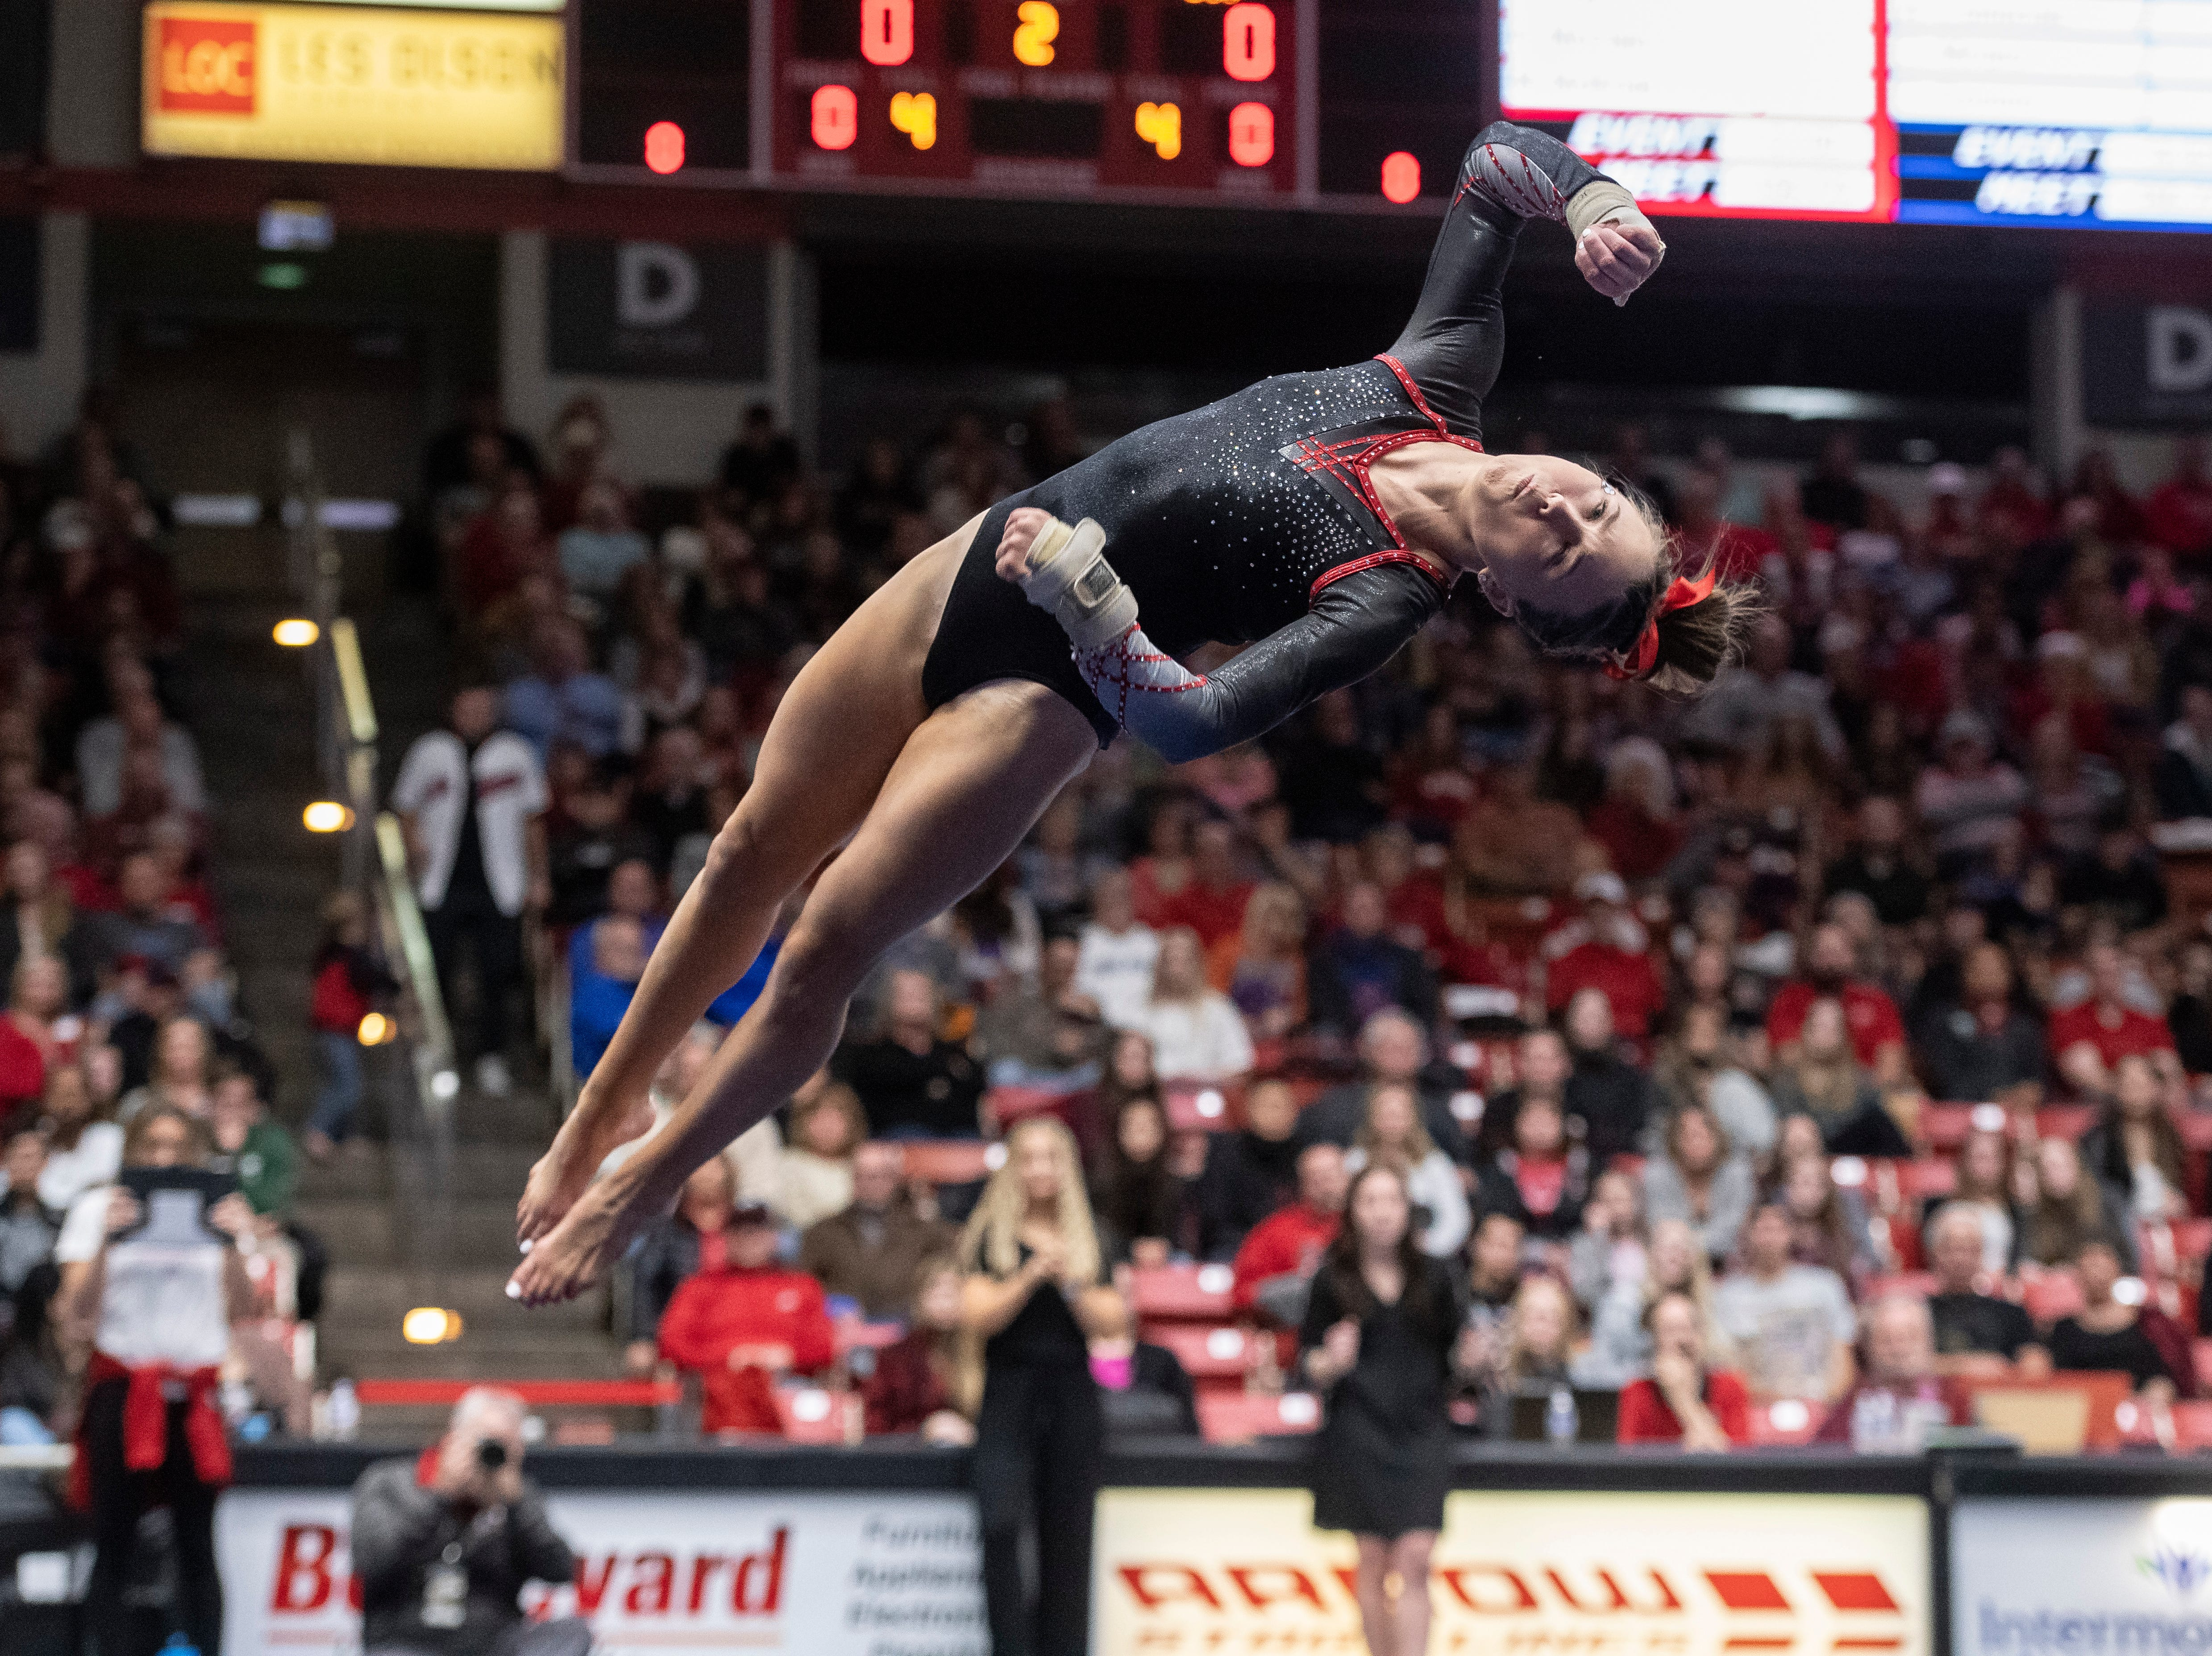 Southern Utah University sophomore Molly Jozwiakowski flies through the air during her floor routine against Boise State at the America First Event Center Friday, January 18, 2019.